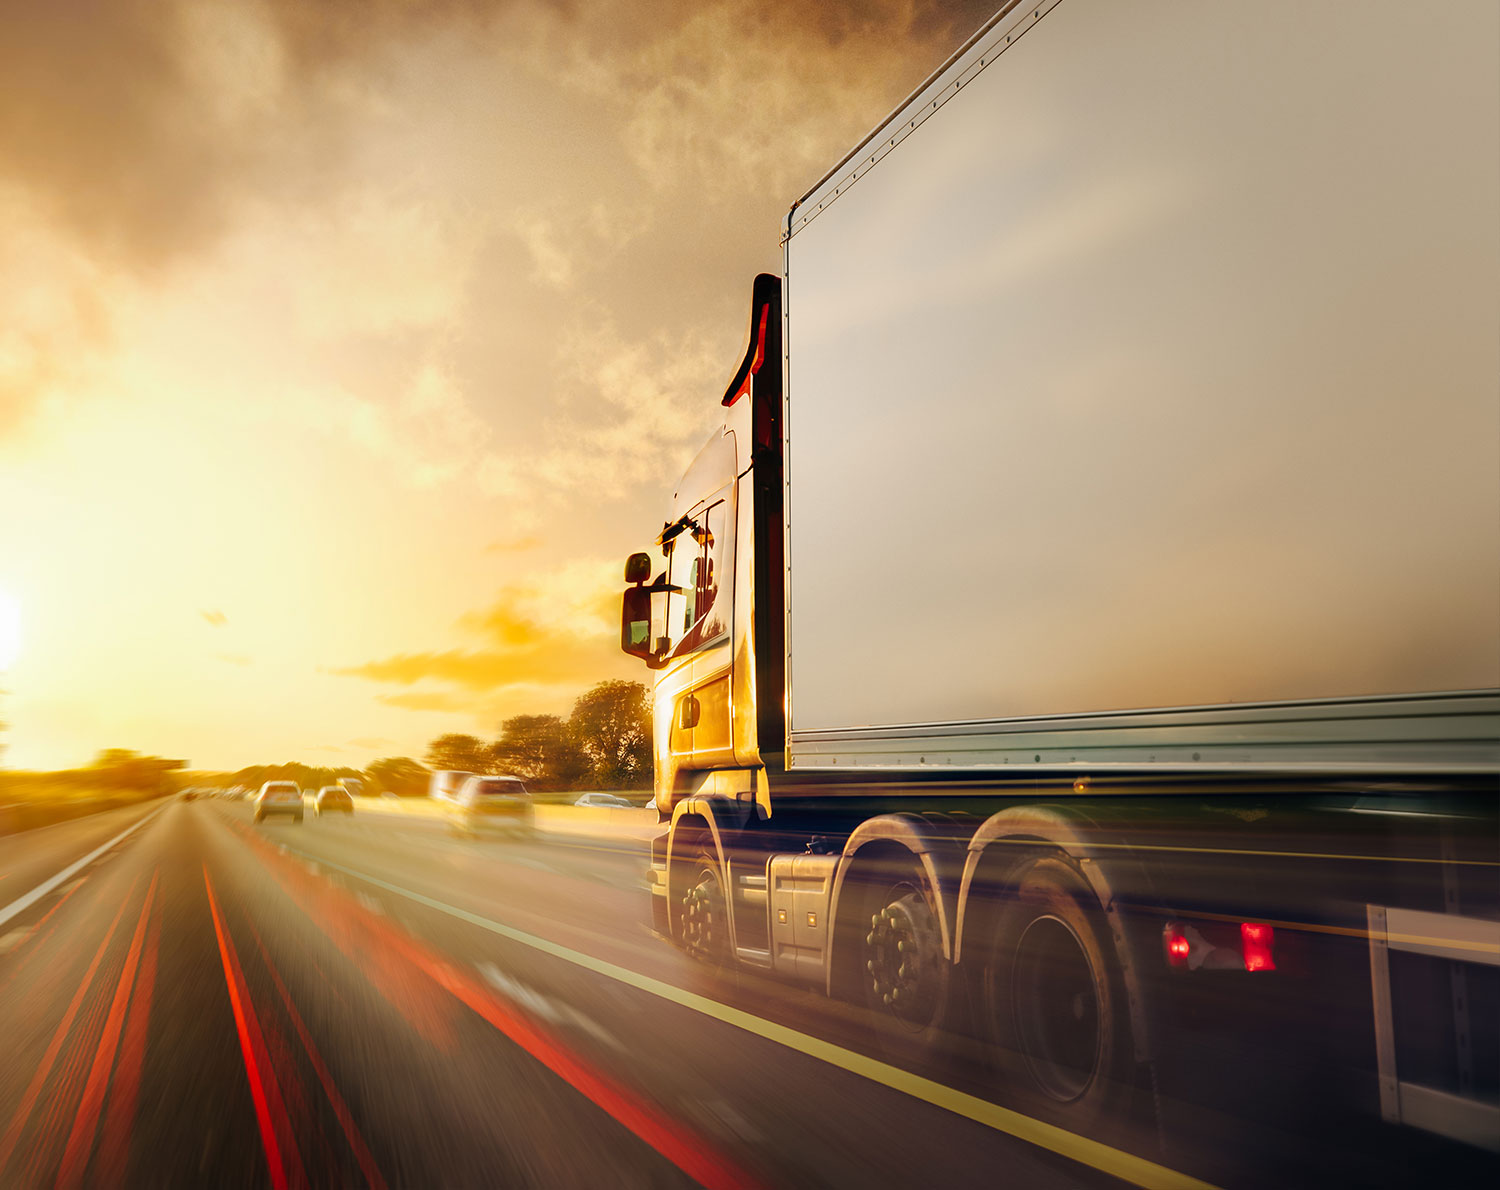 Lorry driving on the road - mass international payments. RationalFX help your business with global payments with our international mass payments product.